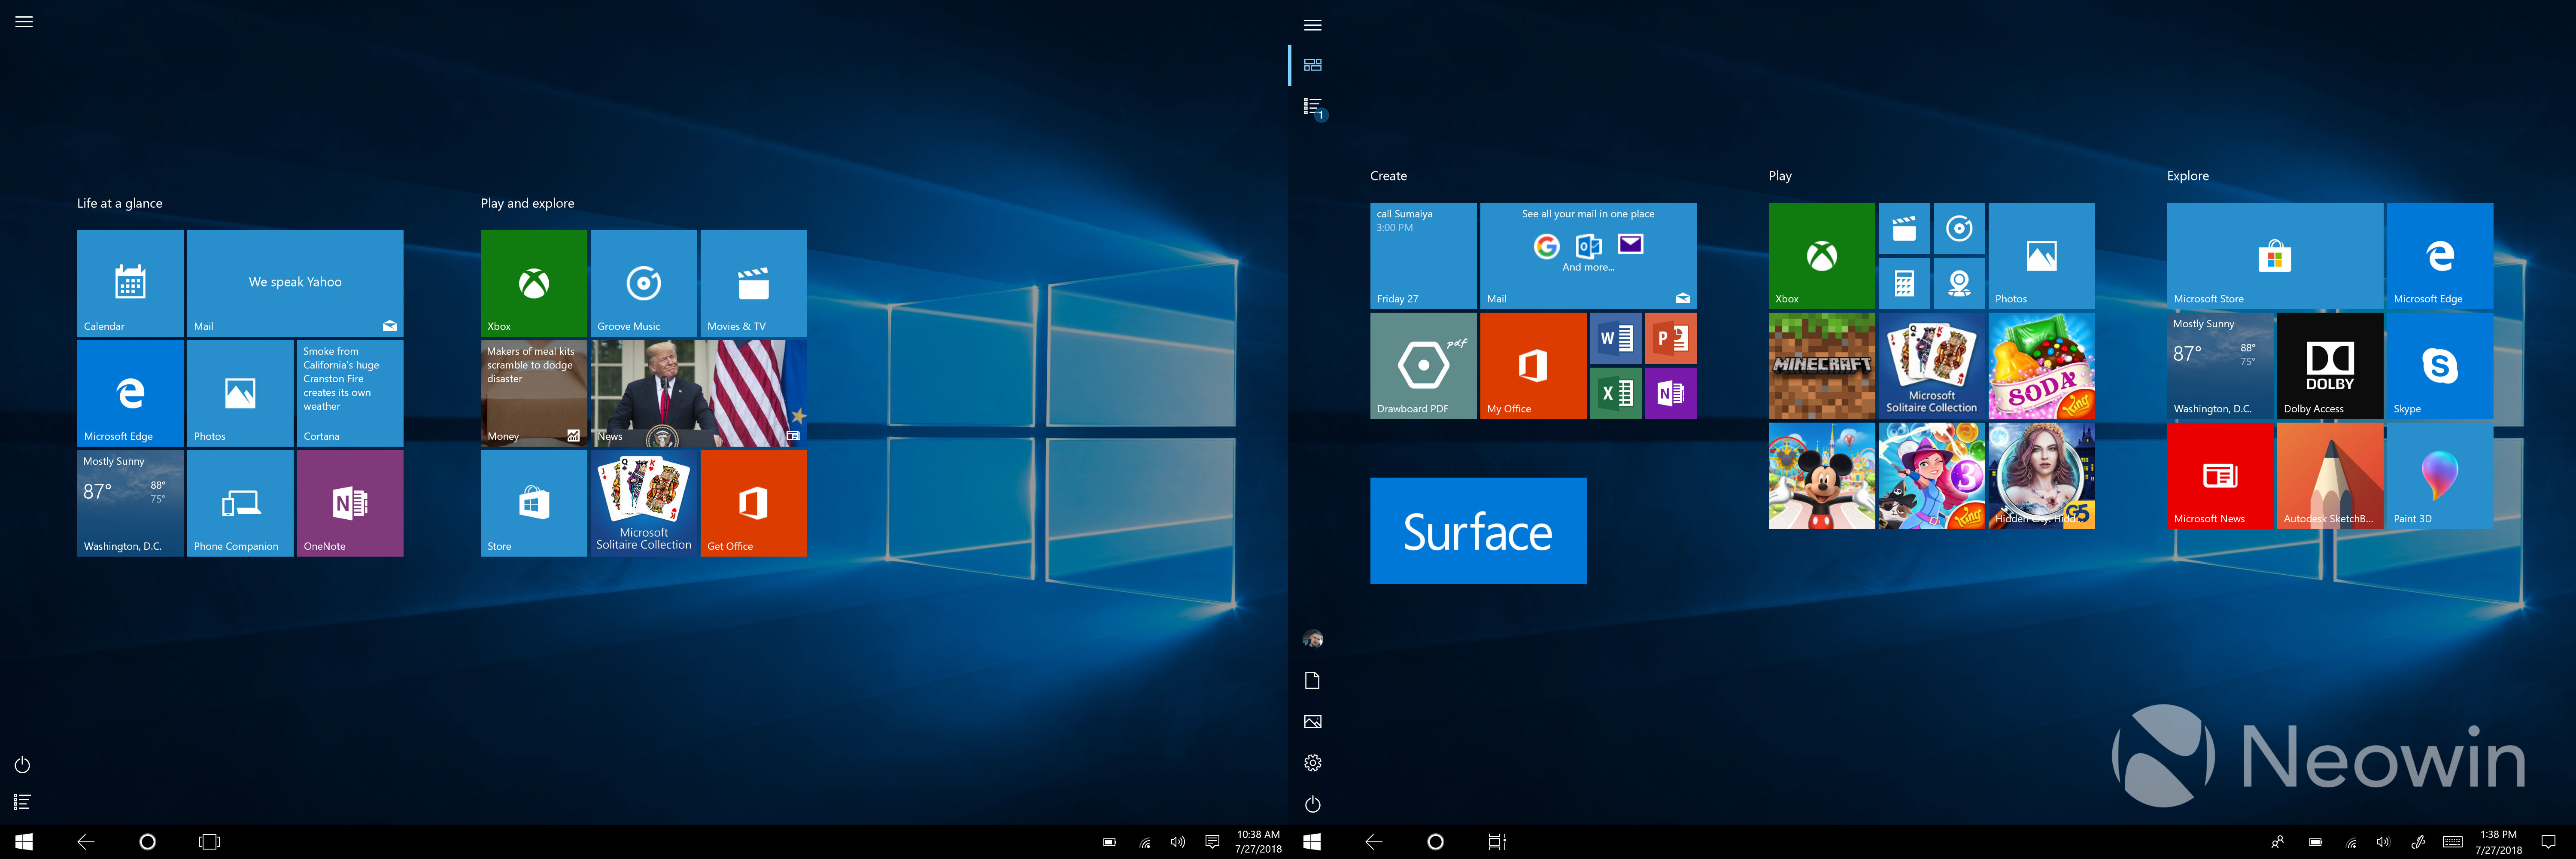 Windows 10 turns three years old today: Here's how it's